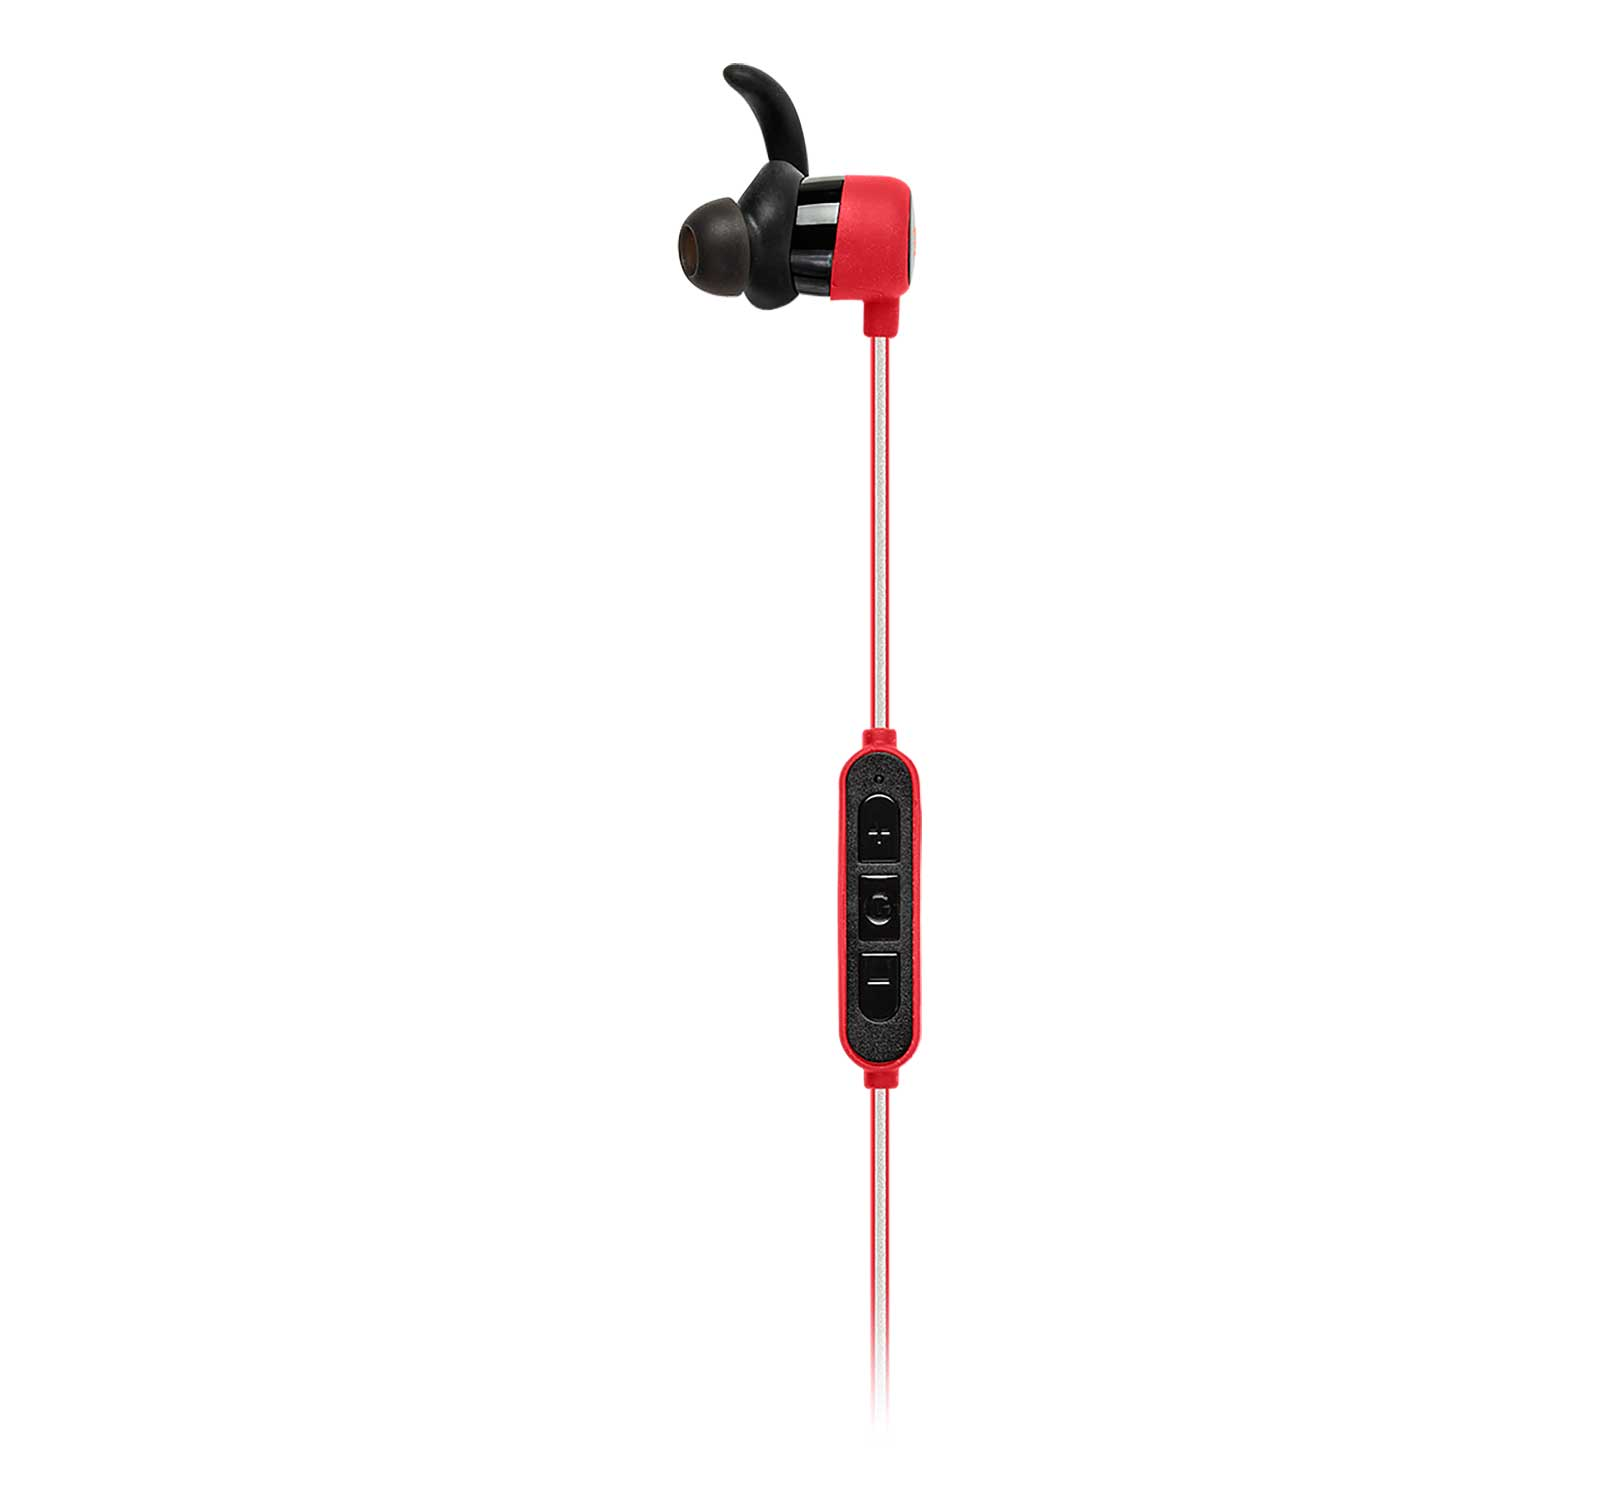 14f308e2602 JBL Reflect Mini BT Red In-ear Bluetooth Sport Headphones - Walmart.com